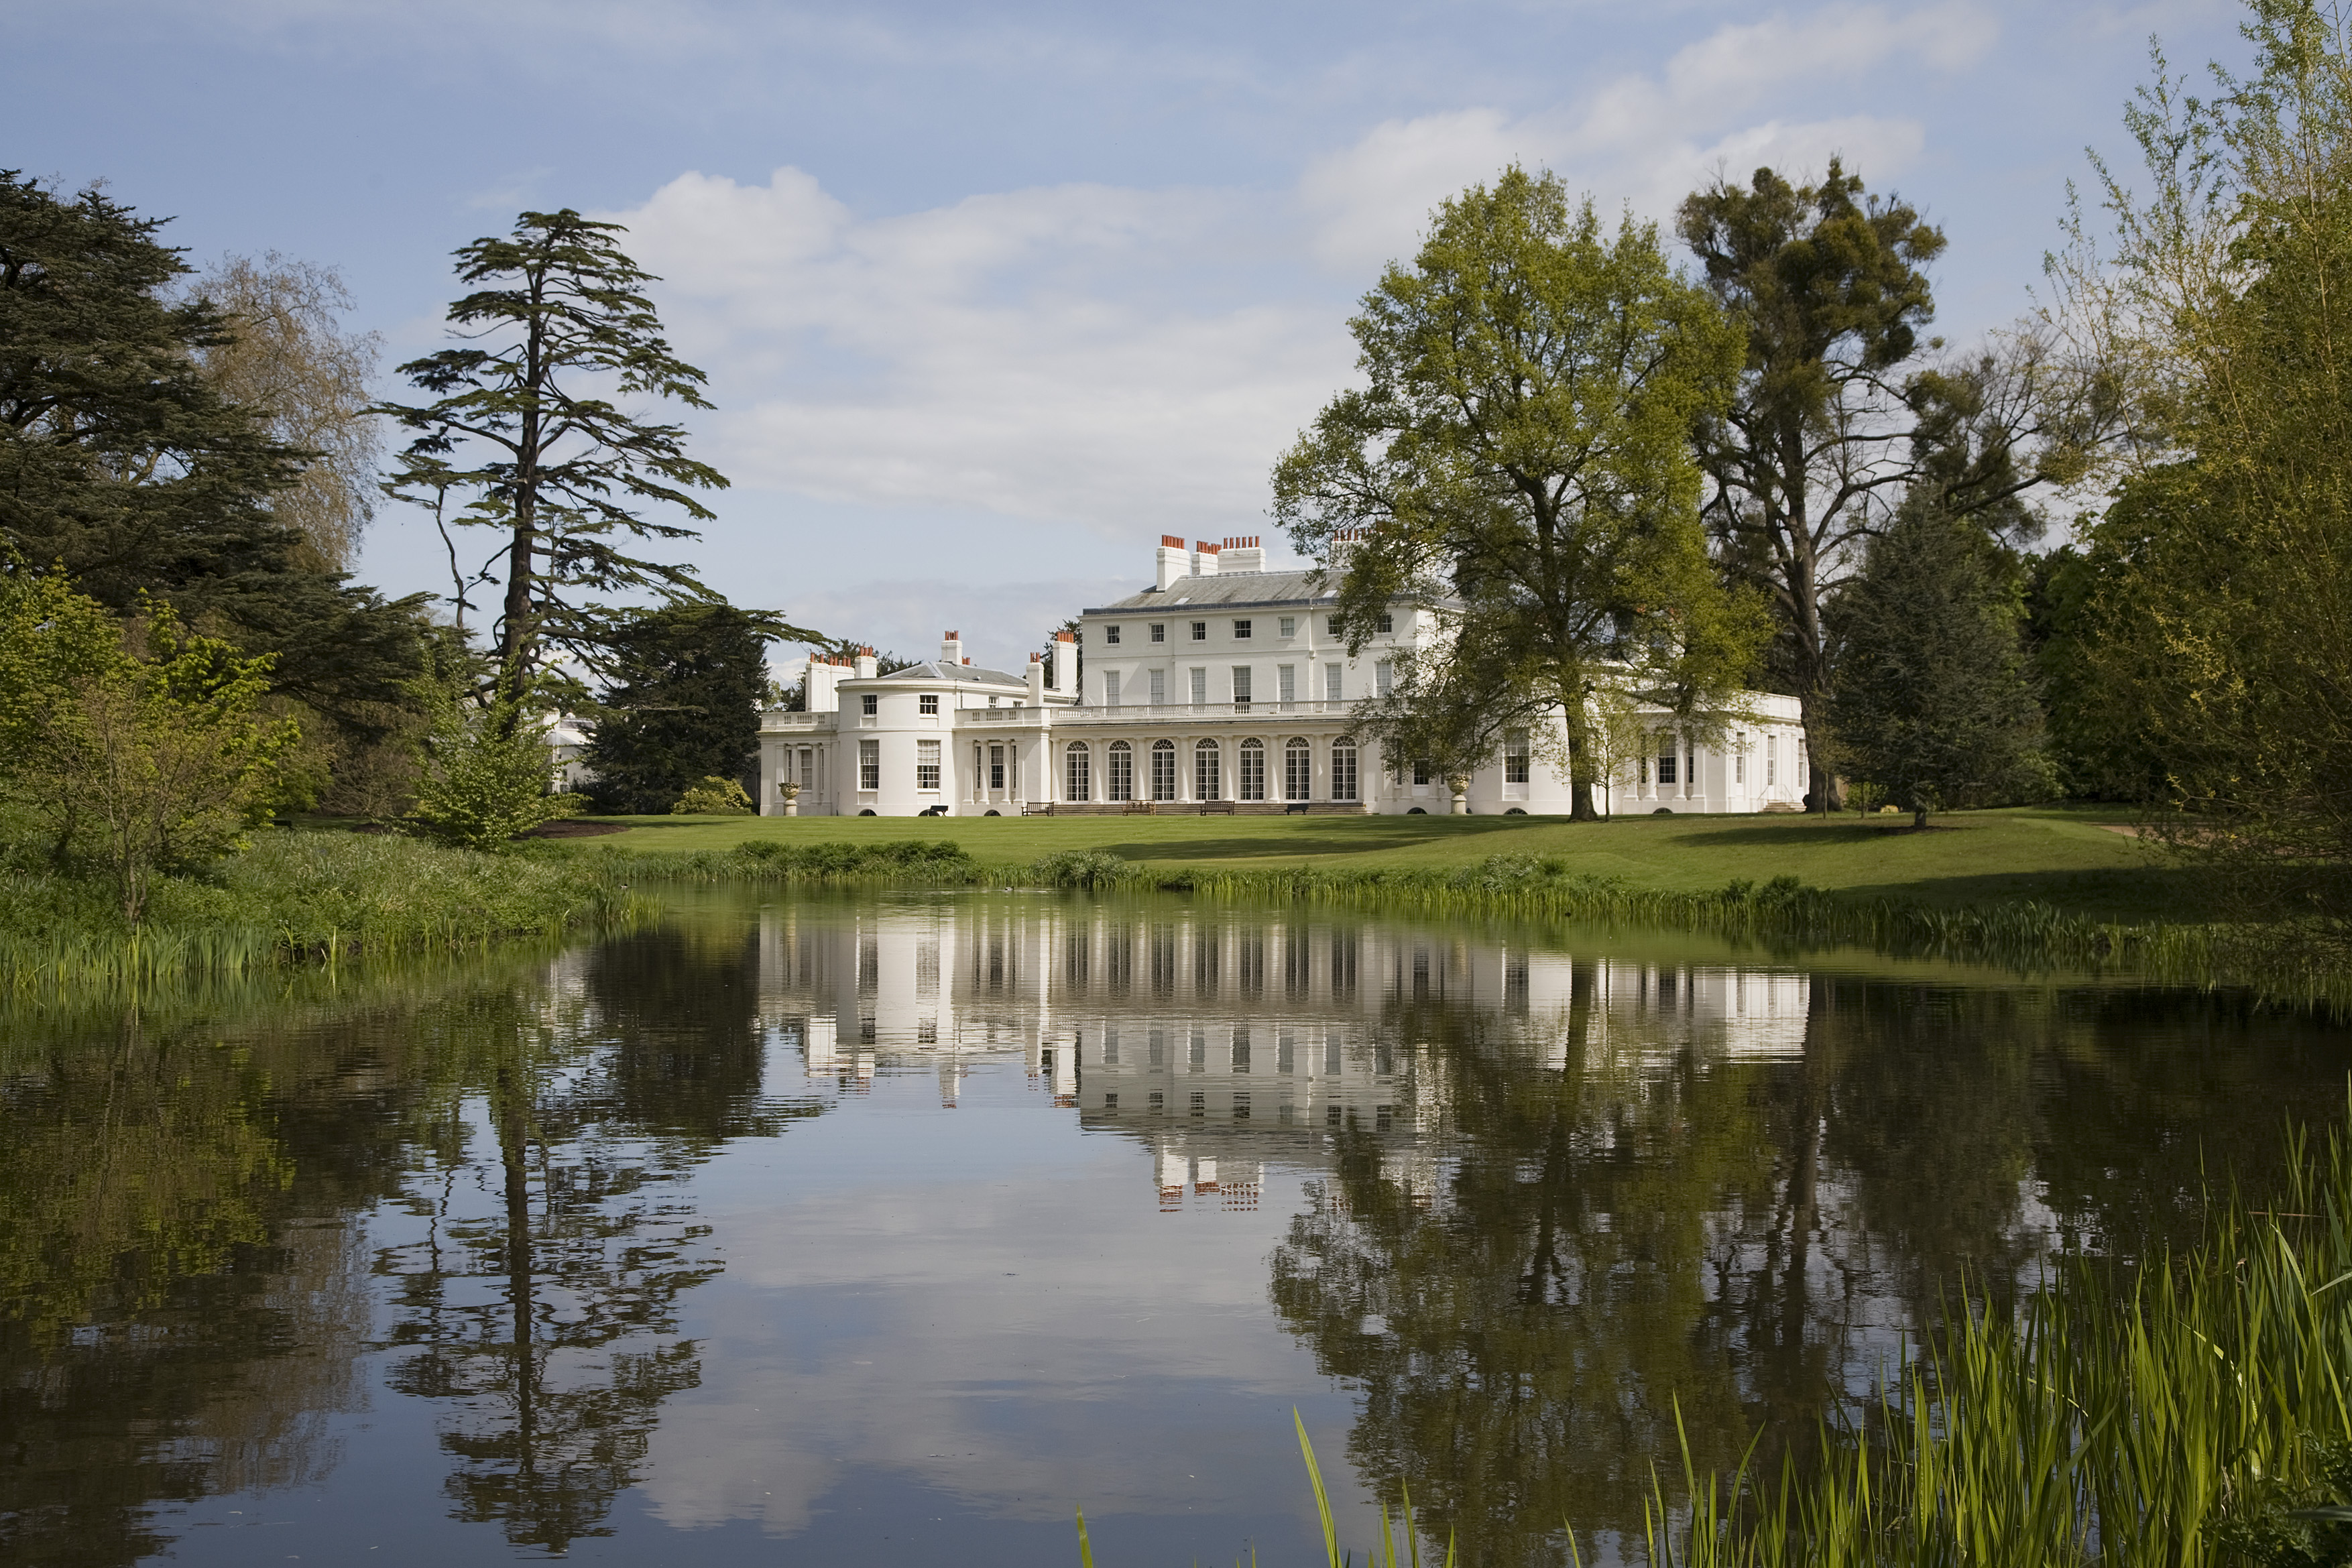 The programme will explore Frogmore House and Gardens.